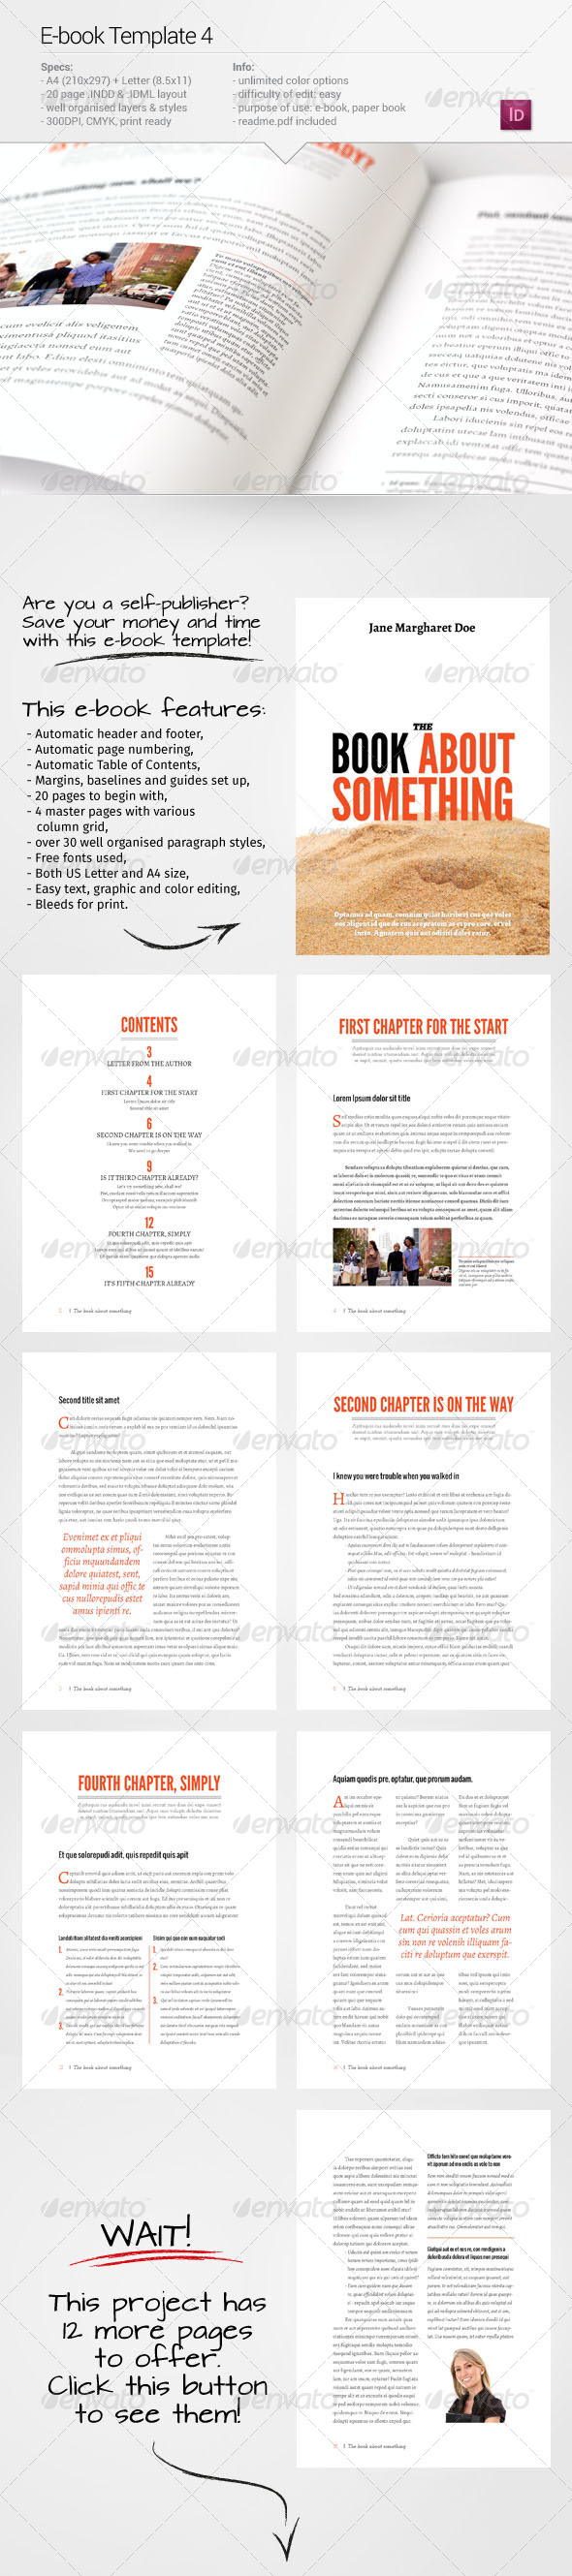 GraphicRiver E-book Template 4 7435847